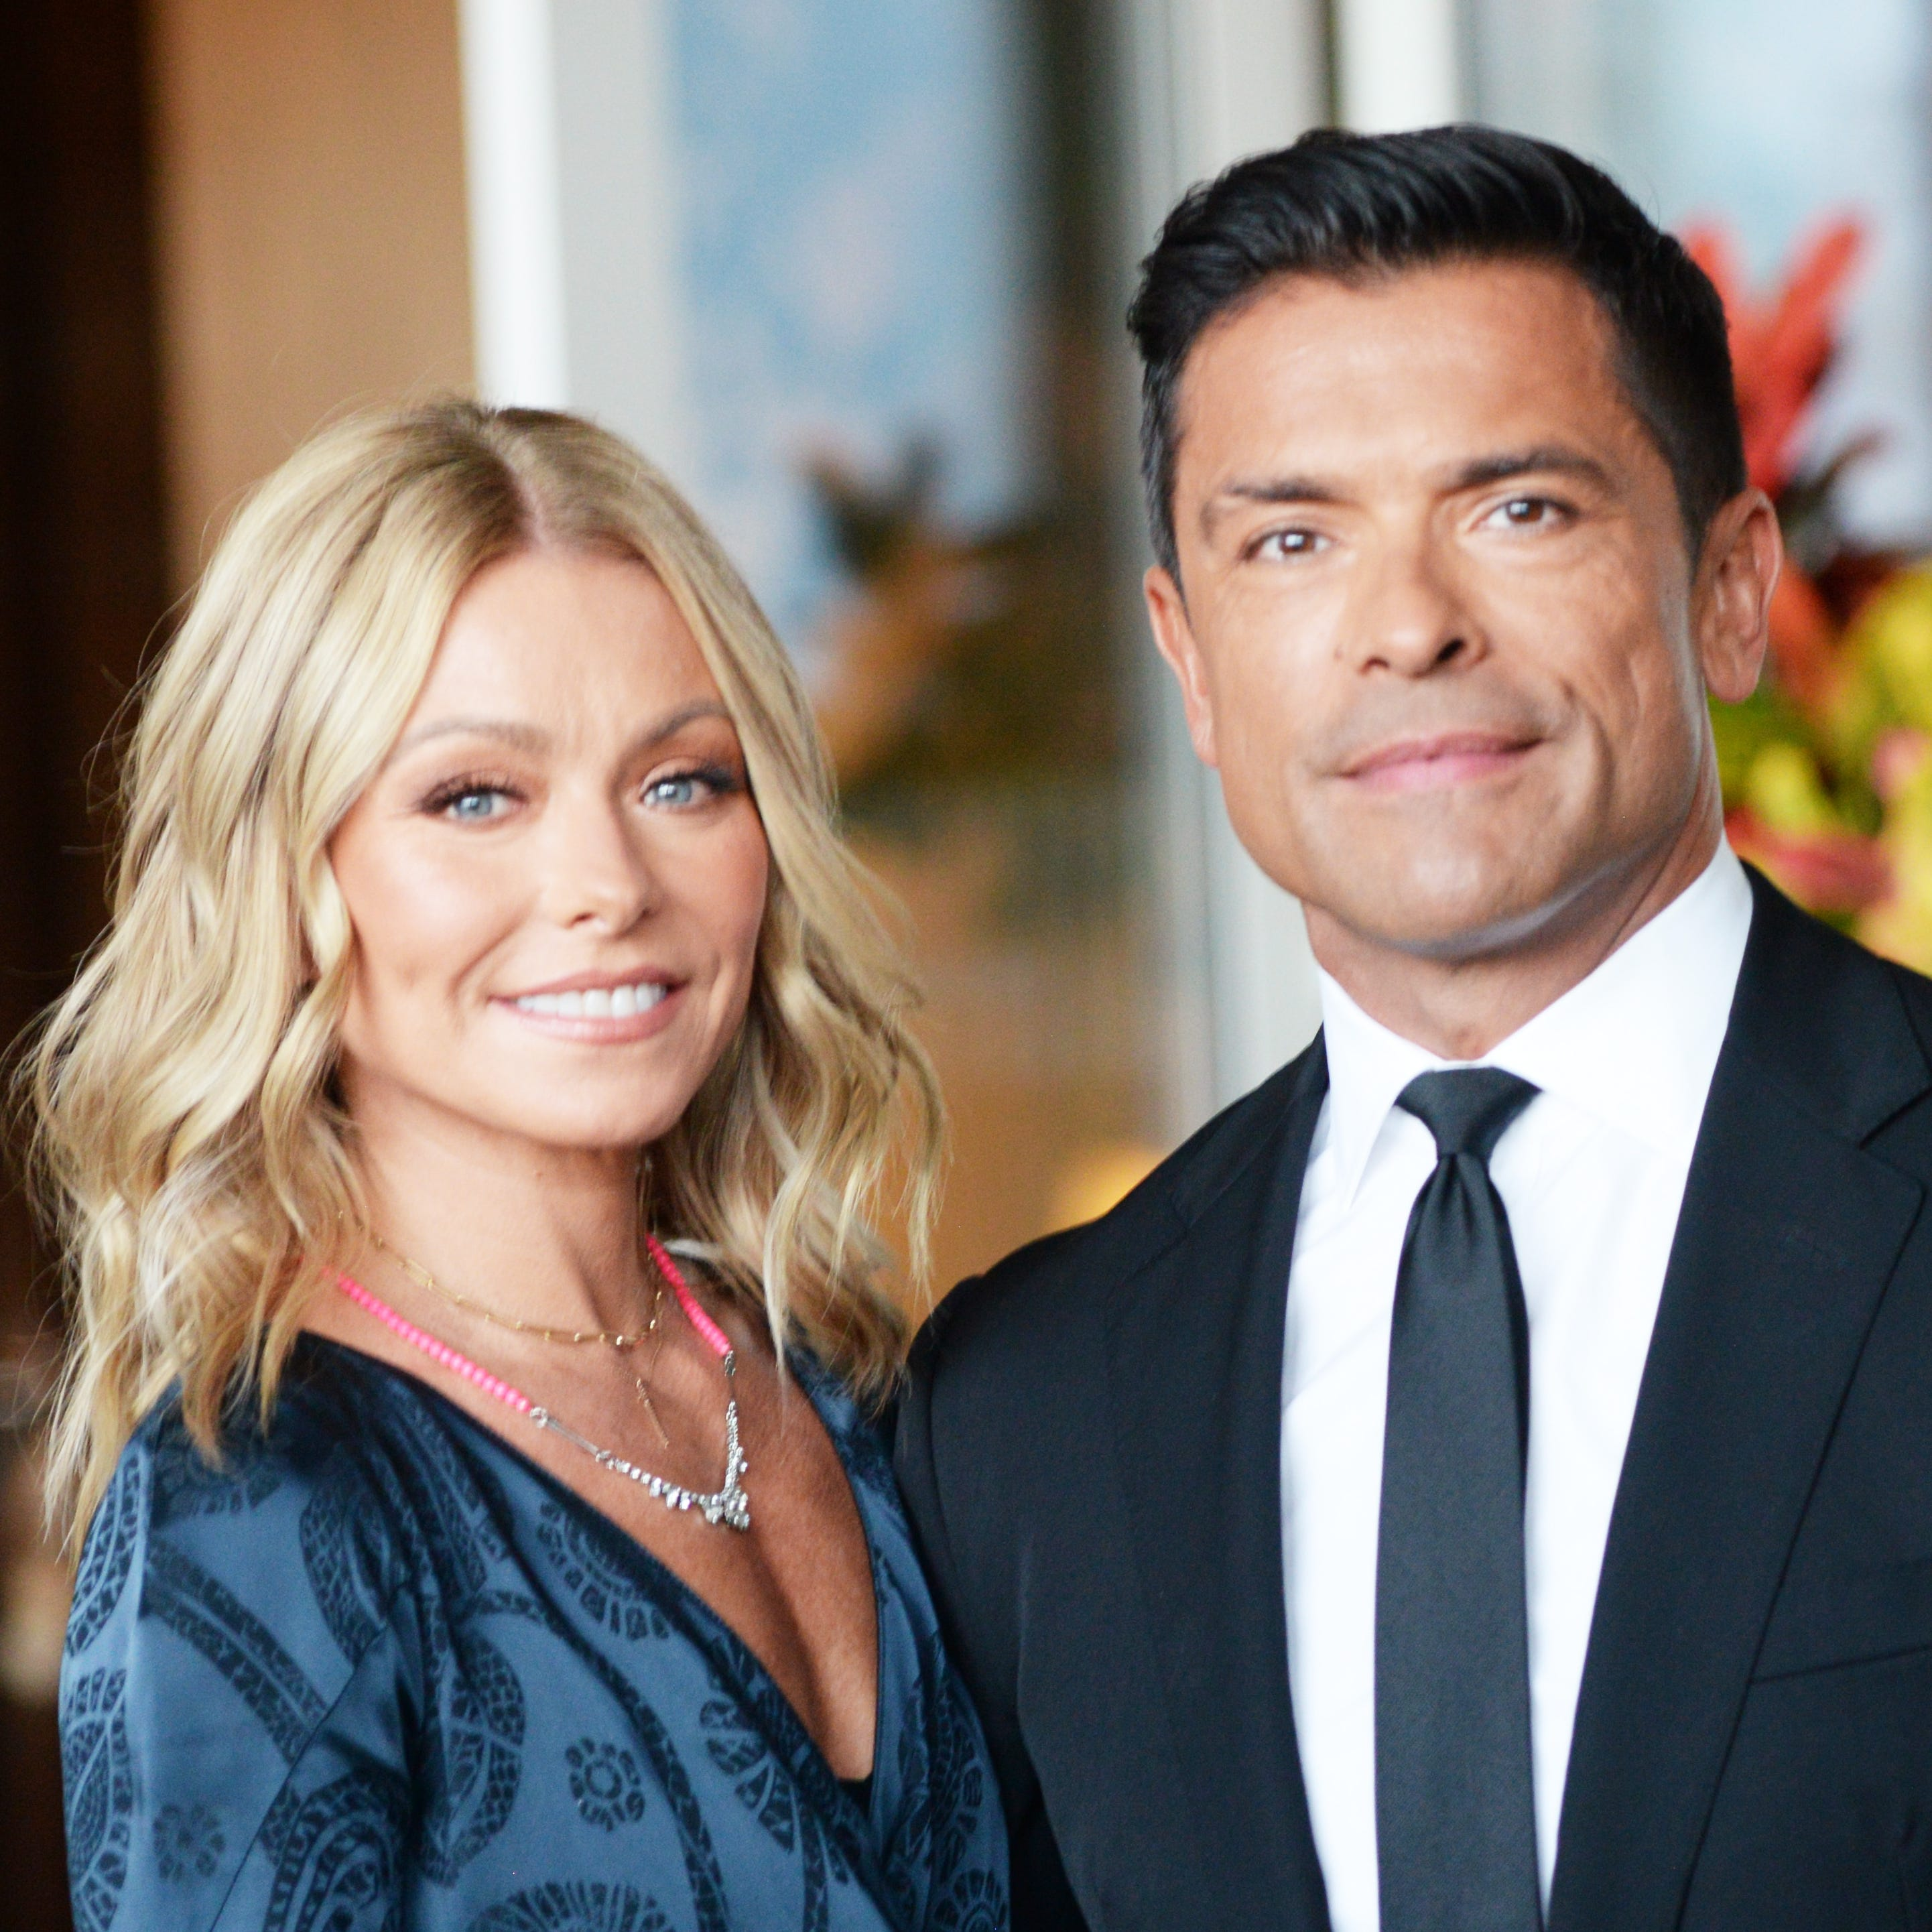 You've heard of crisis actors? Well, Kelly Ripa and Mark Consuelos hired Christmas card actors.